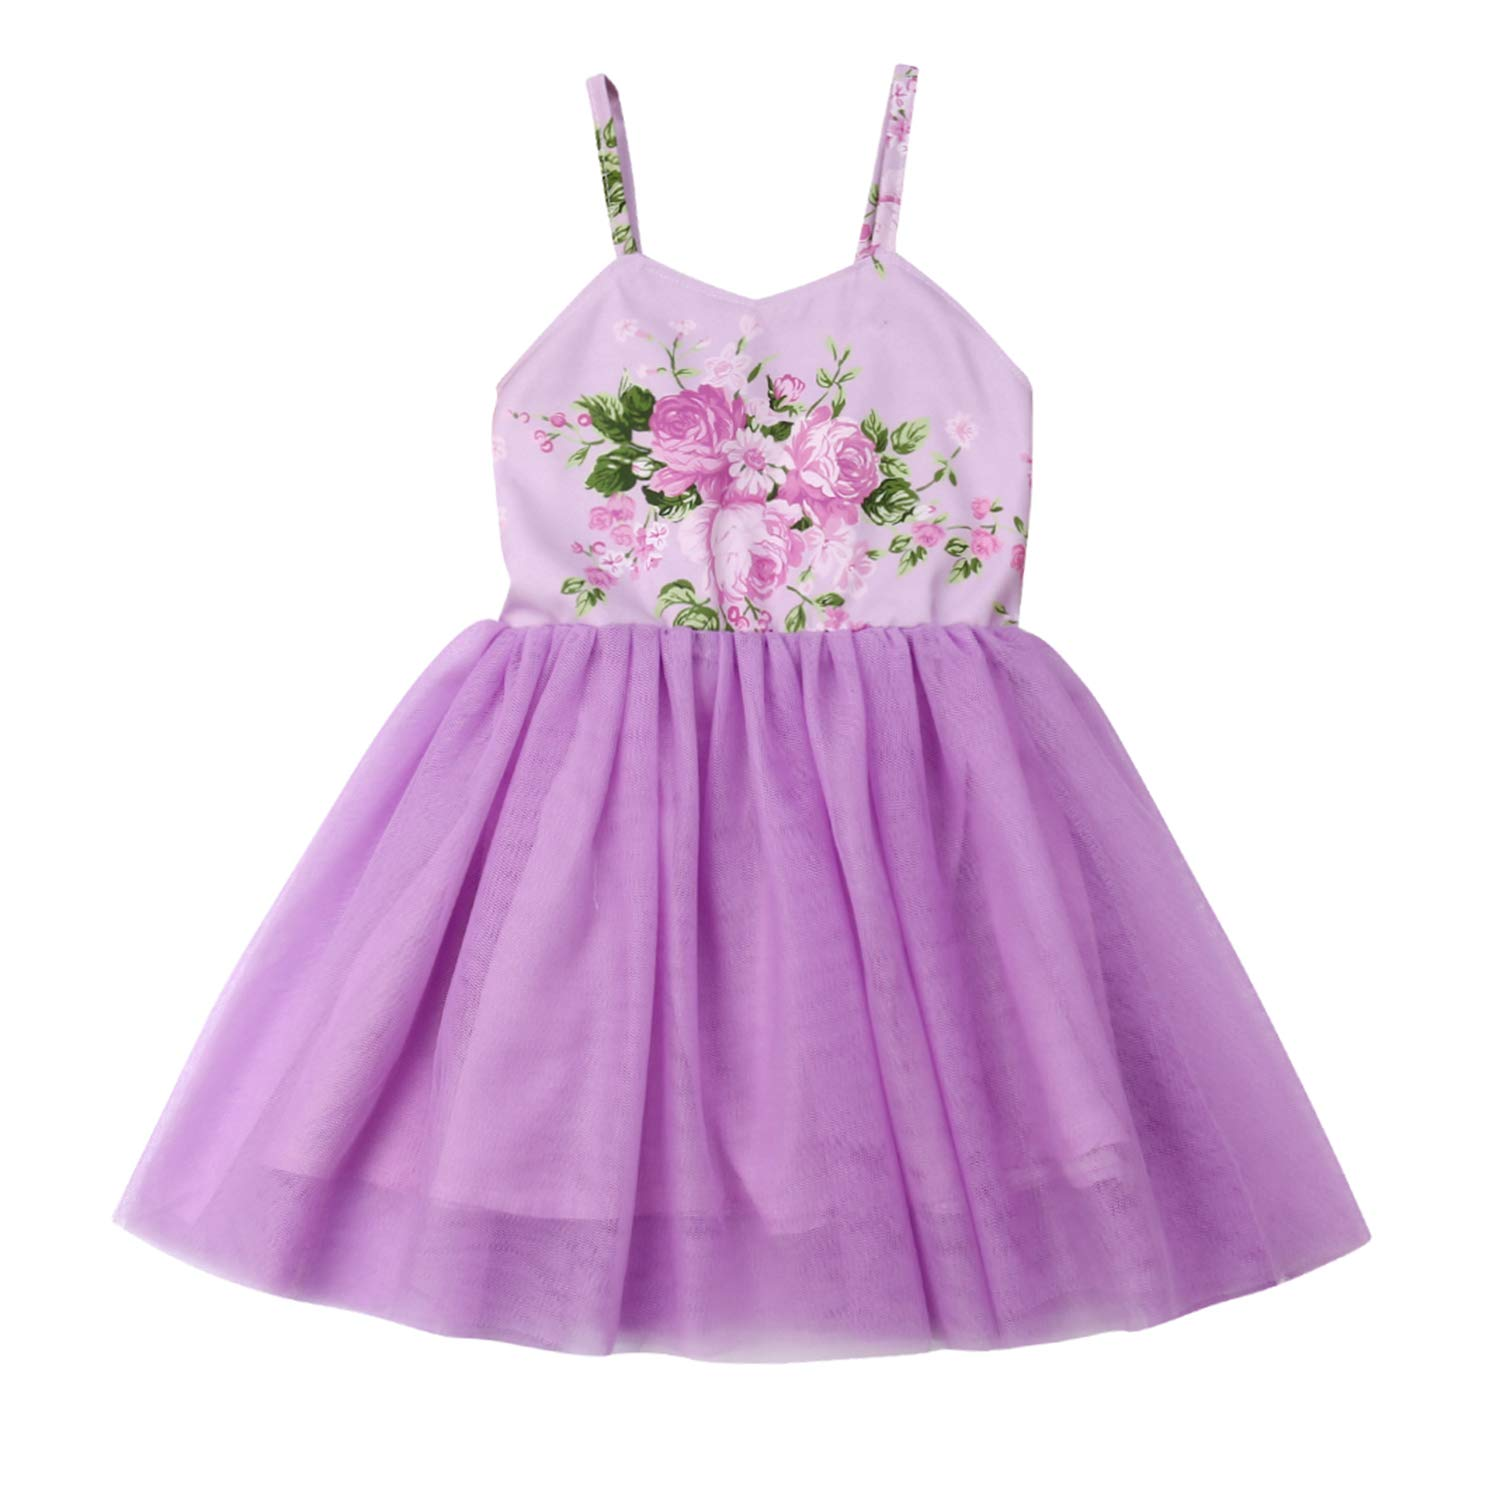 Flower Girls Backless Floral Printed Pink Lace Tutu Dress Toddler Kids Princess Party Dresses Sundress